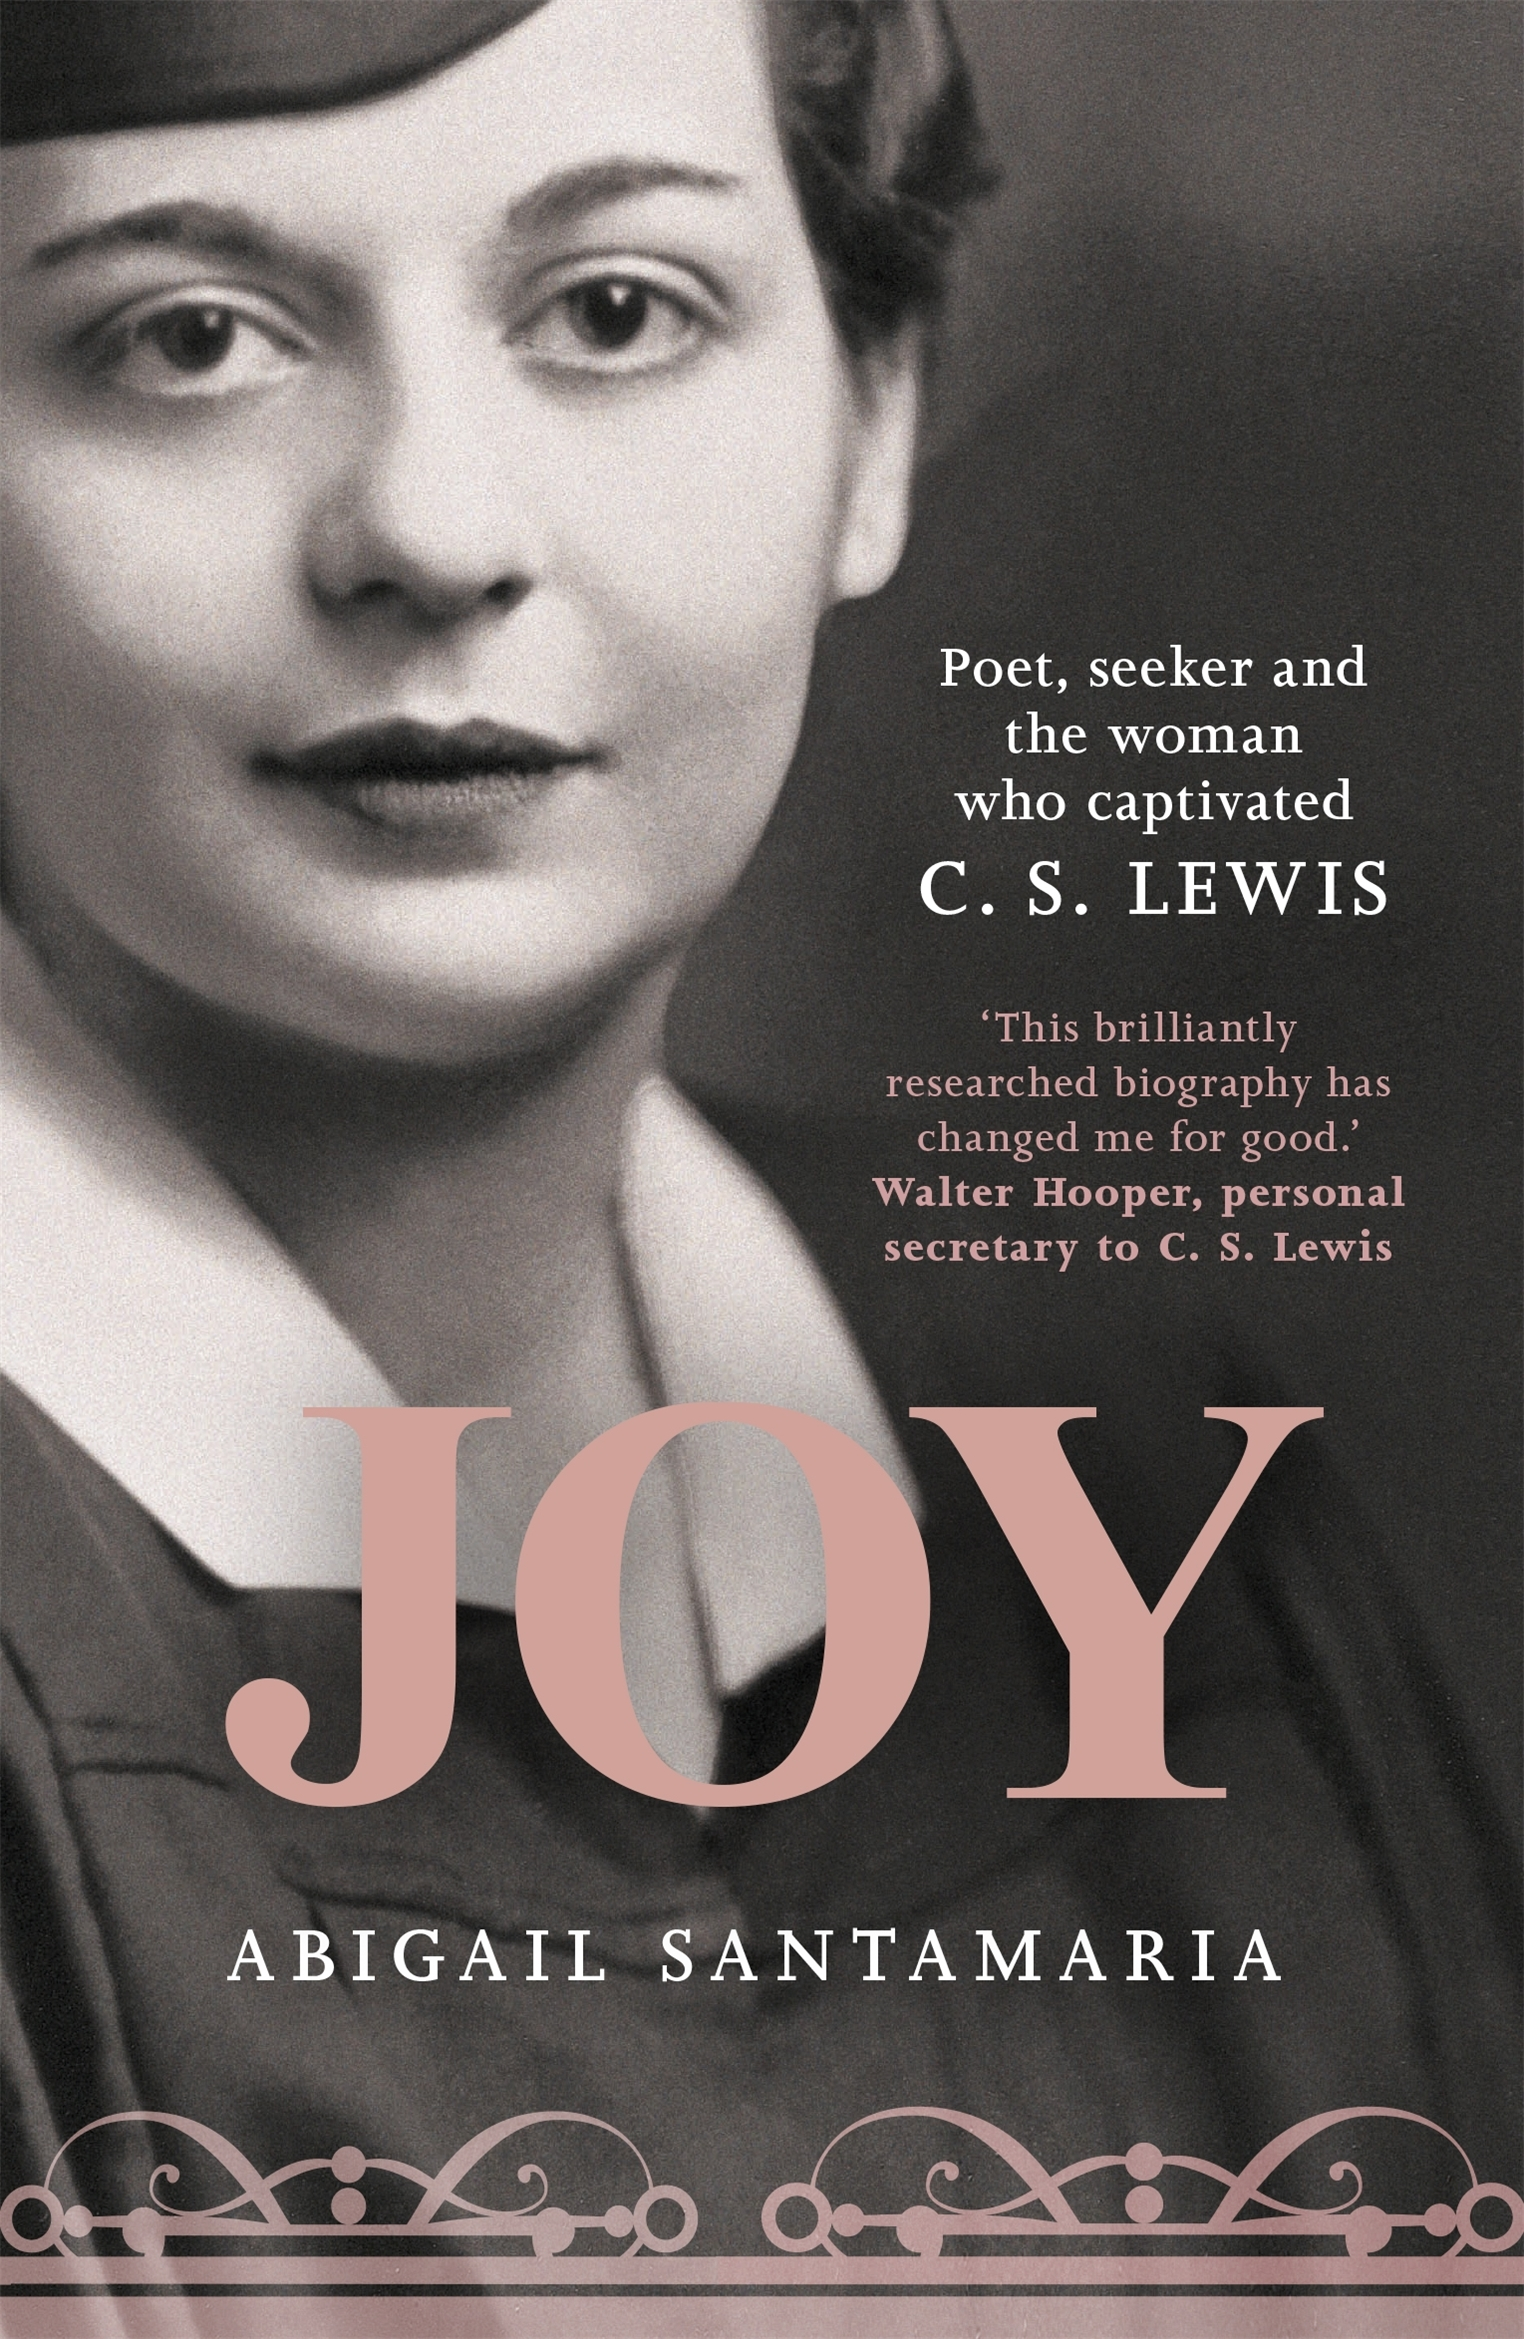 Joy Paperback. Poet, Seeker and the Woman Who Captivated C. S. Lewis